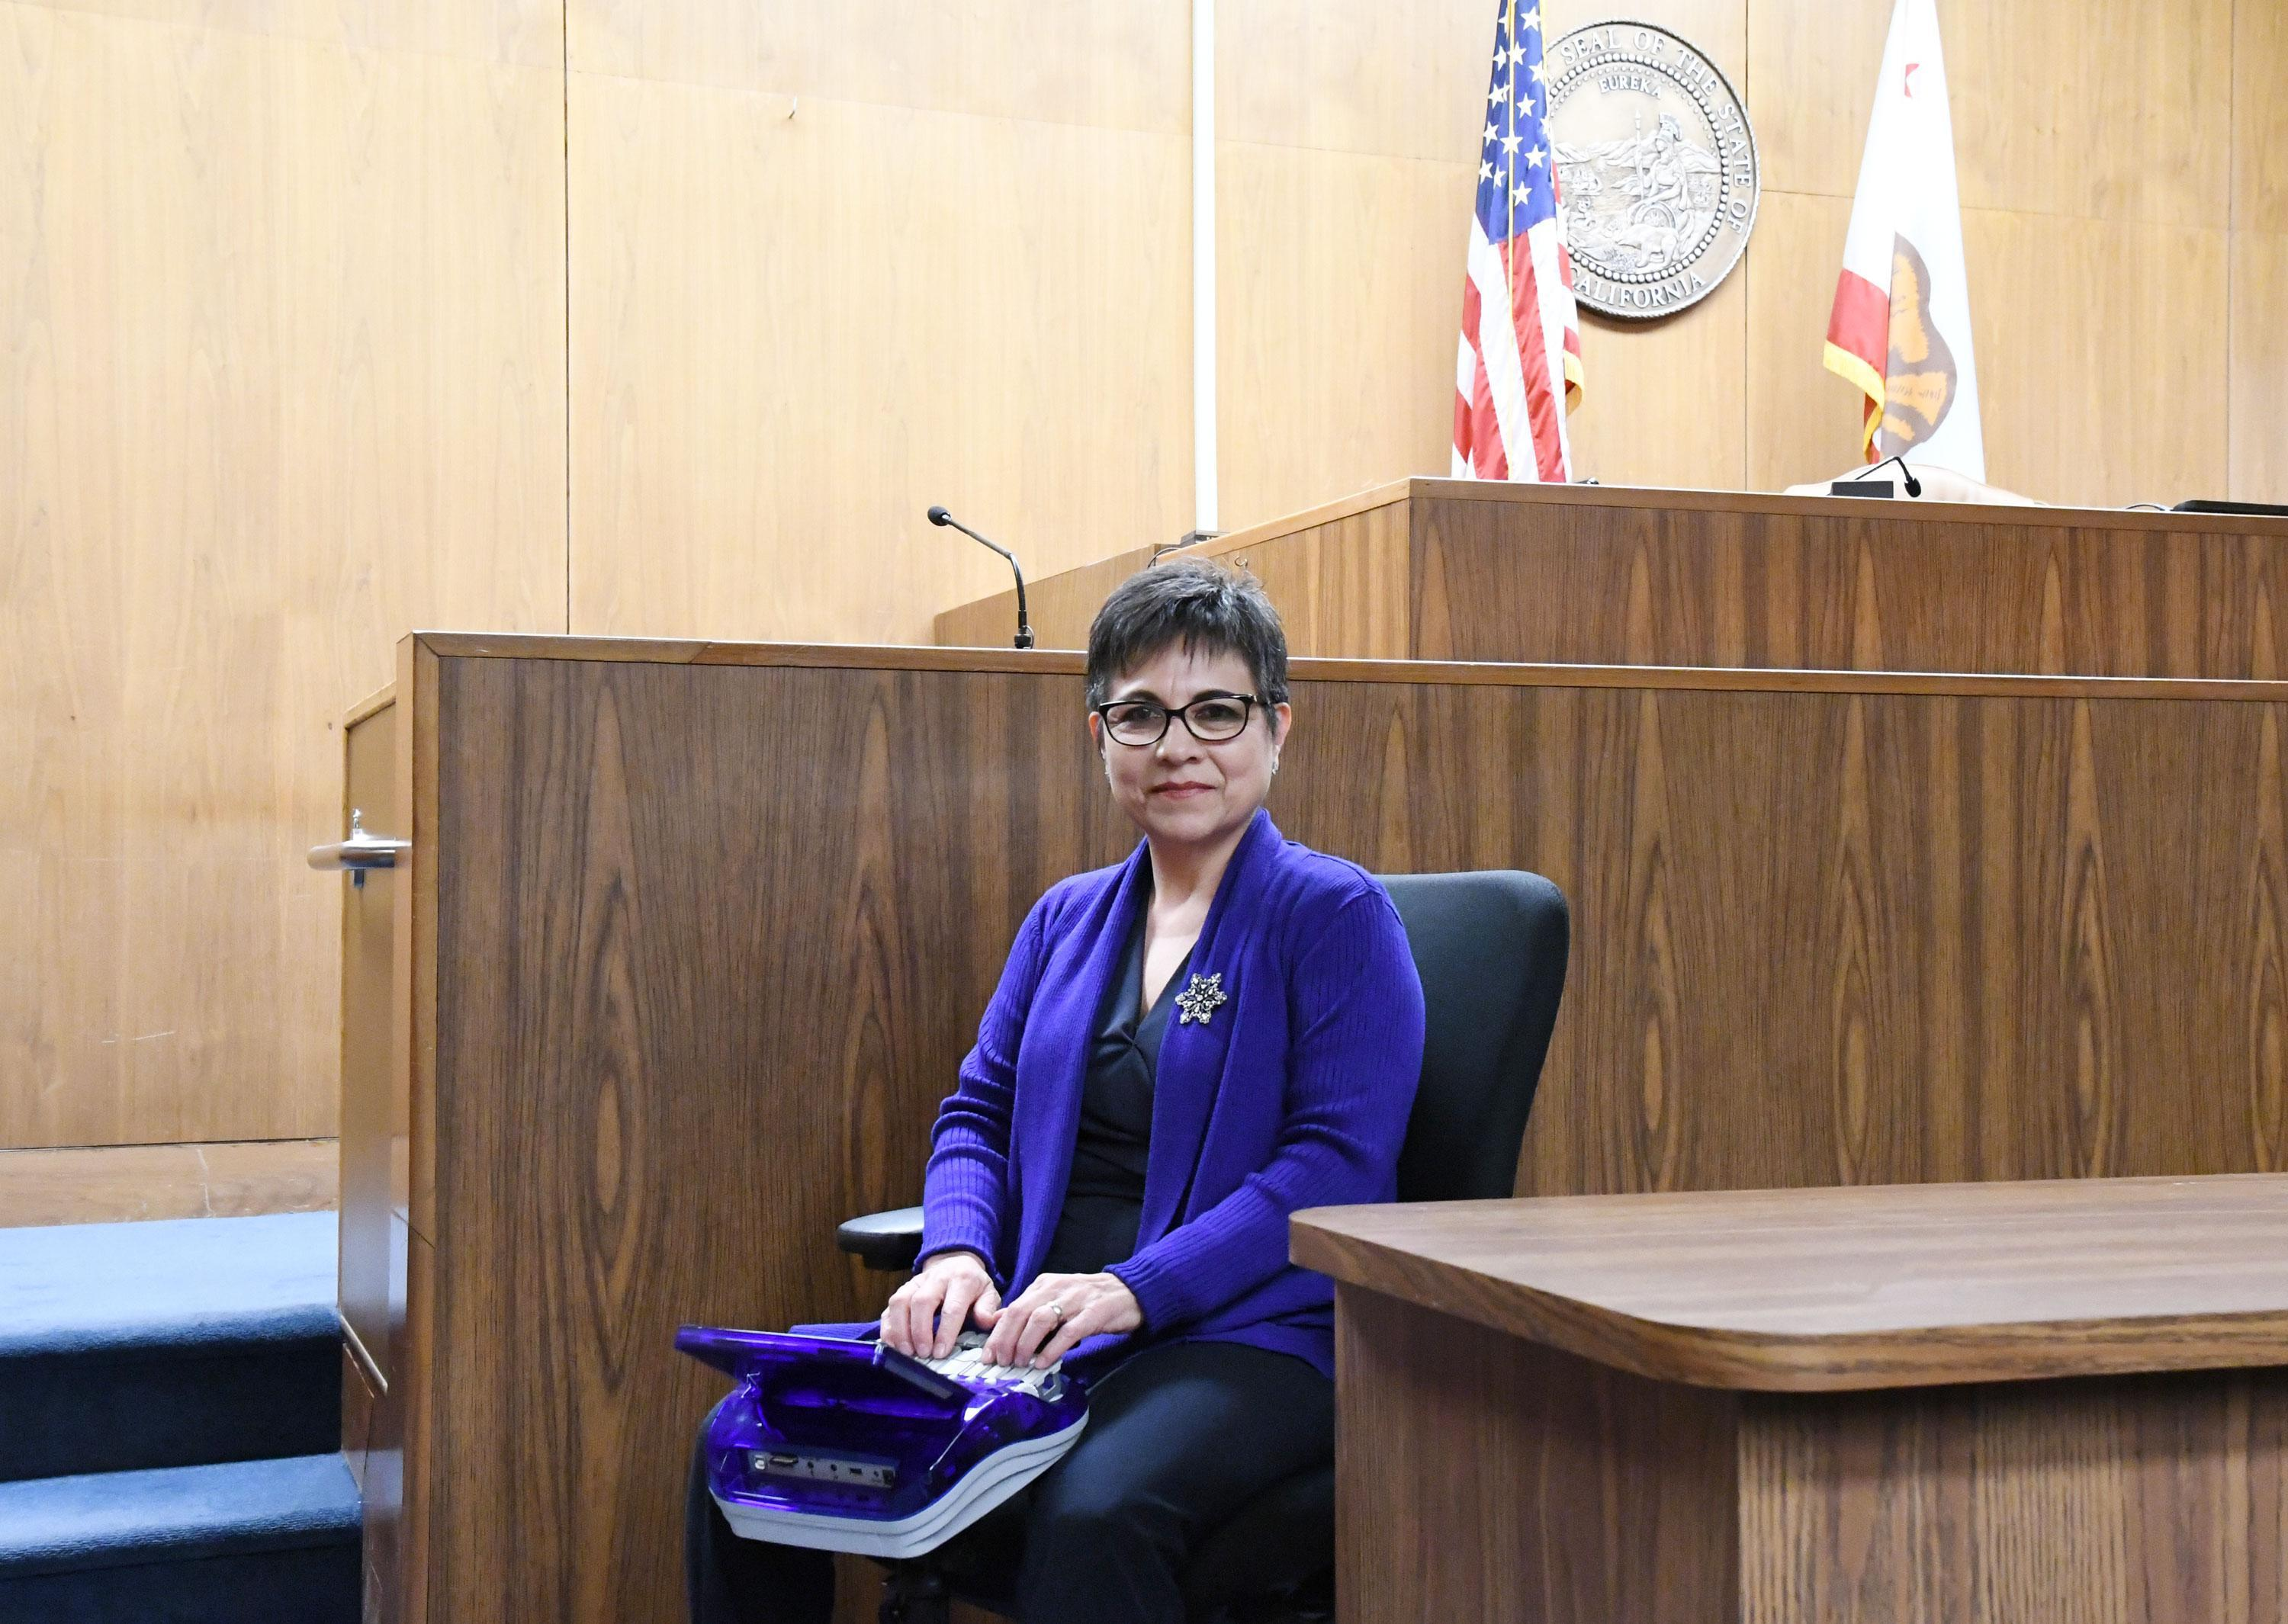 AFSCME Local 10 member Florence Ortiz, an official court reporter for the Stanislaus County Superior Court